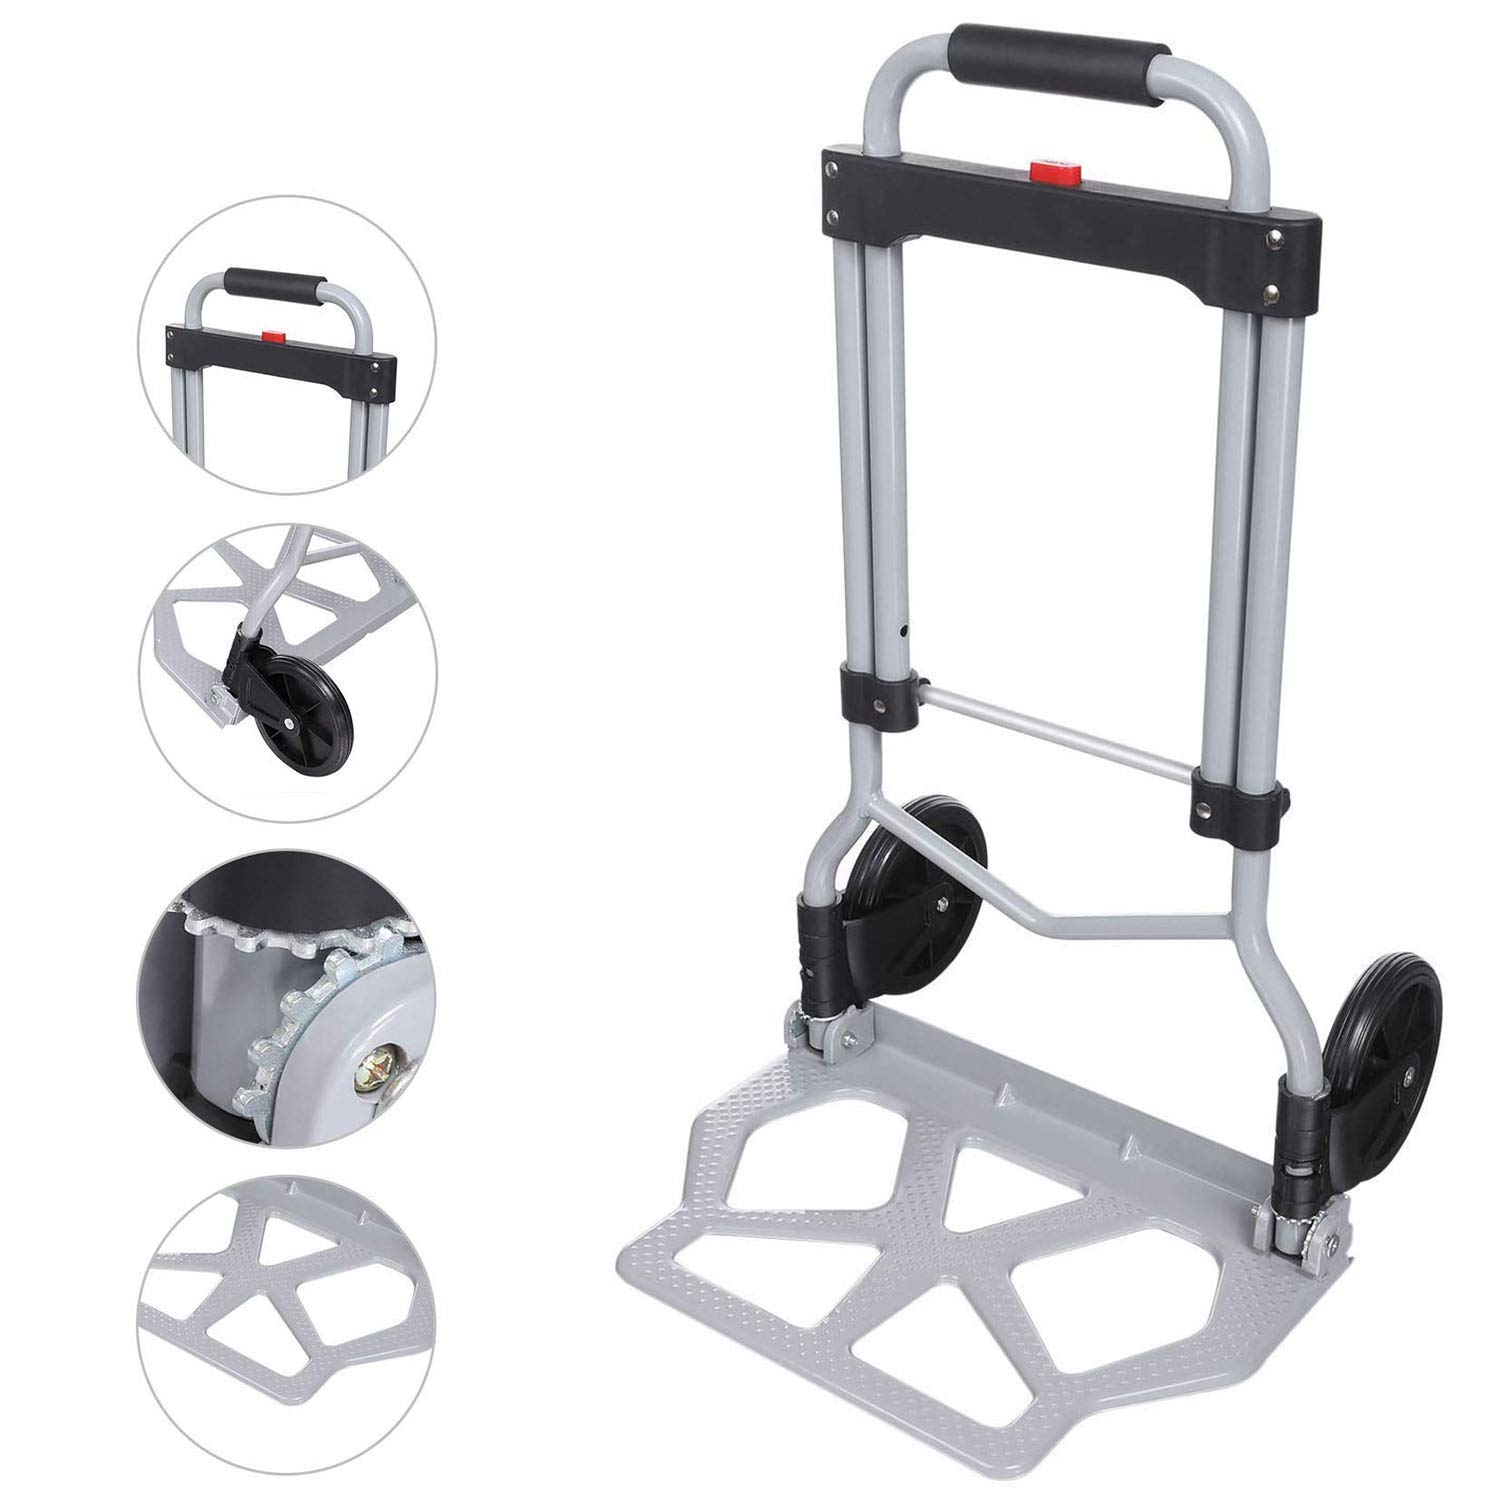 Folding Hand Truck Dolly, 100Kg/220 lbs Heavy Duty 2-Wheel Aluminum Cart Compact and Lightweight for Luggage, Moving and Office Use